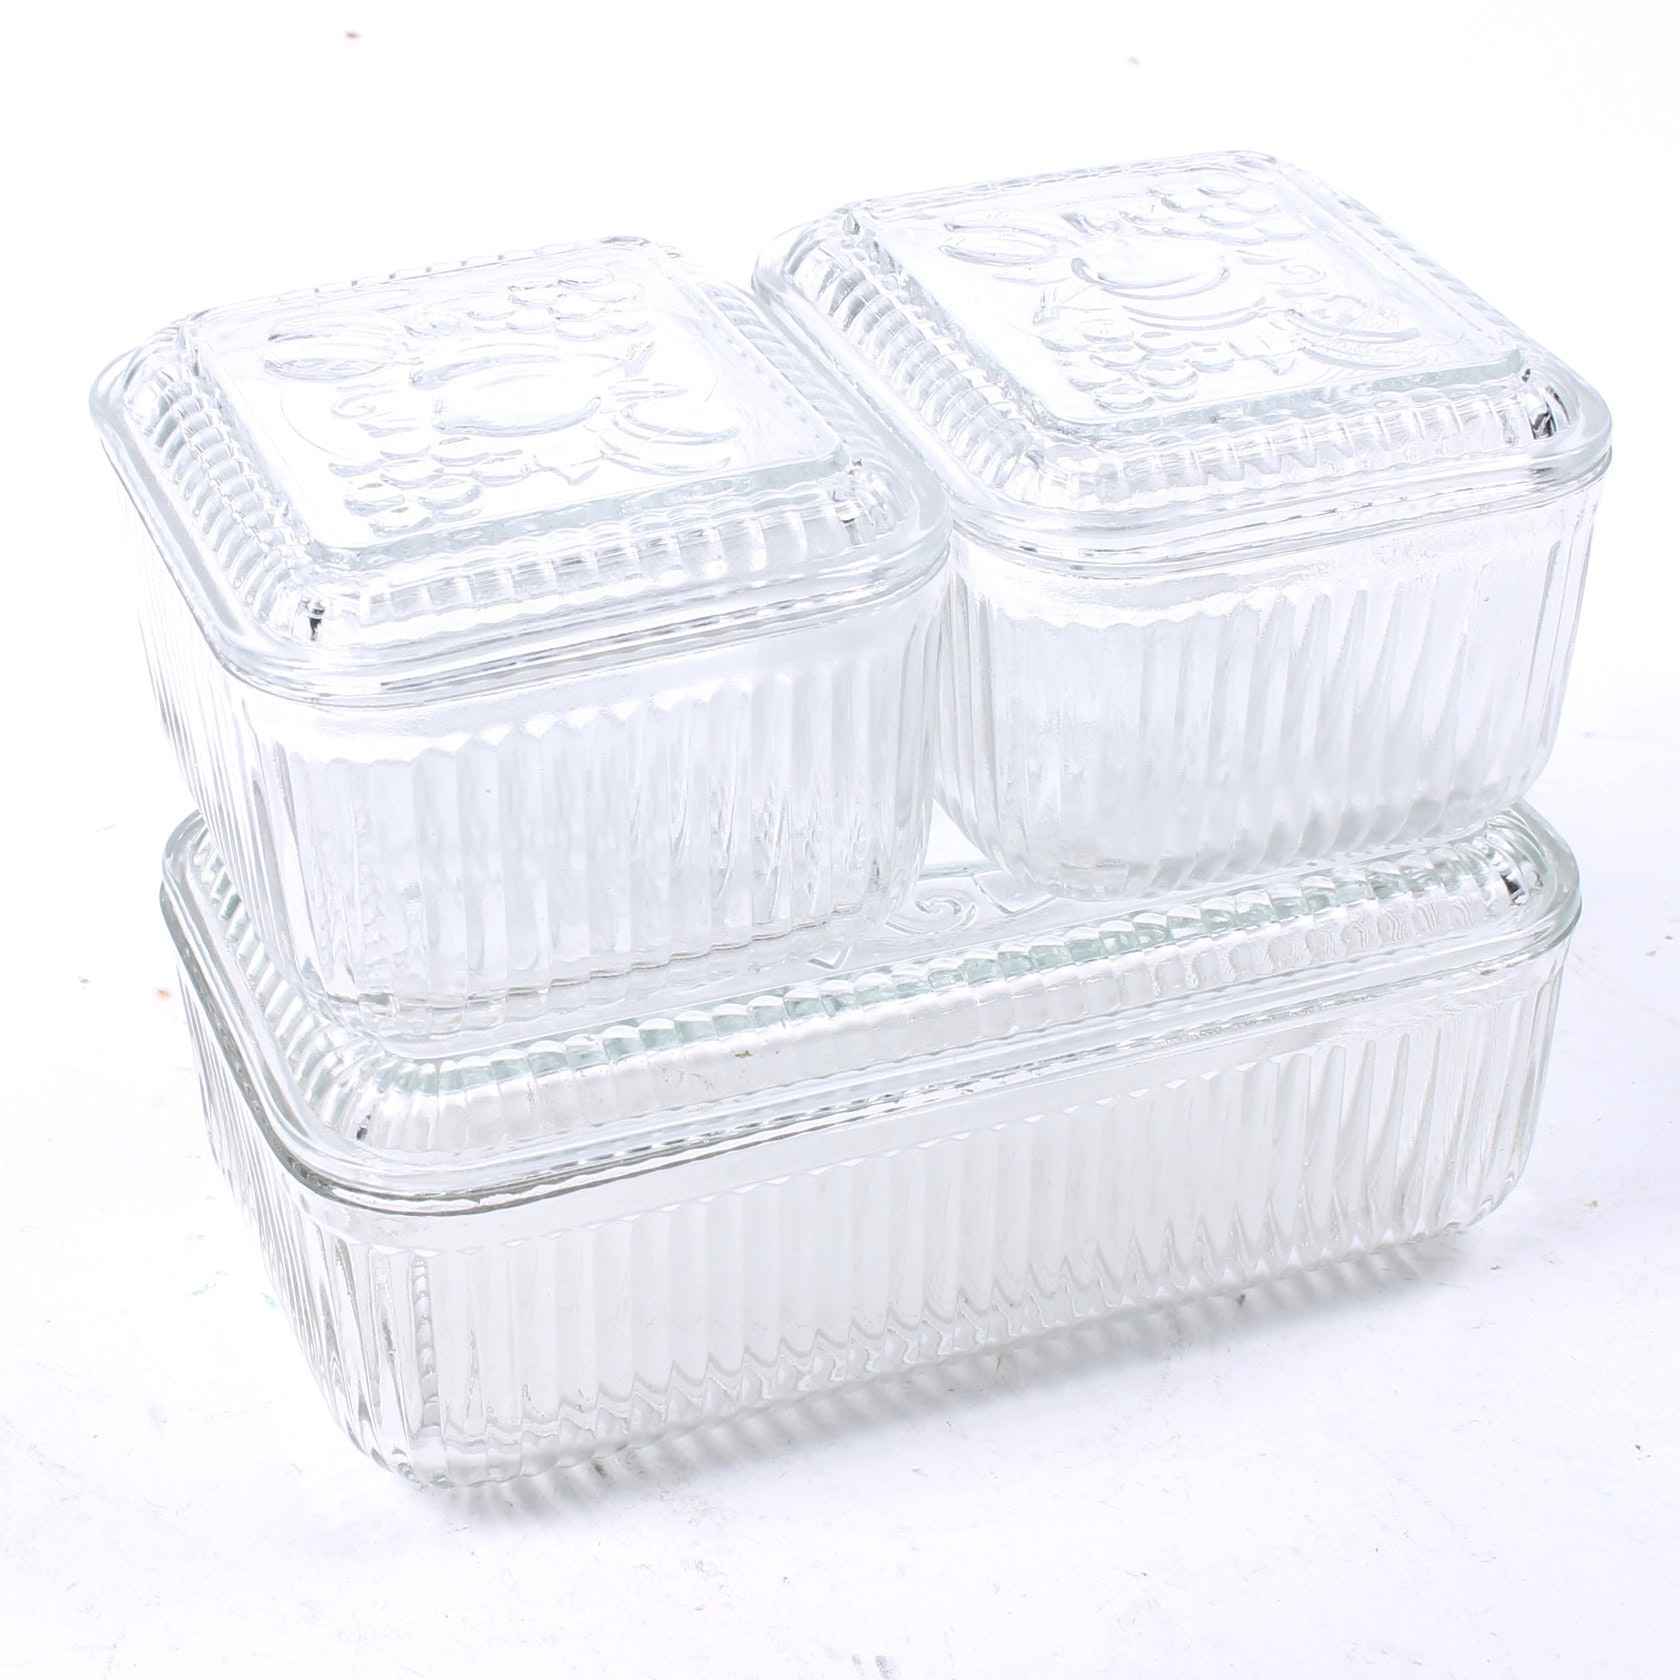 Vintage Glass Refrigerator Containers